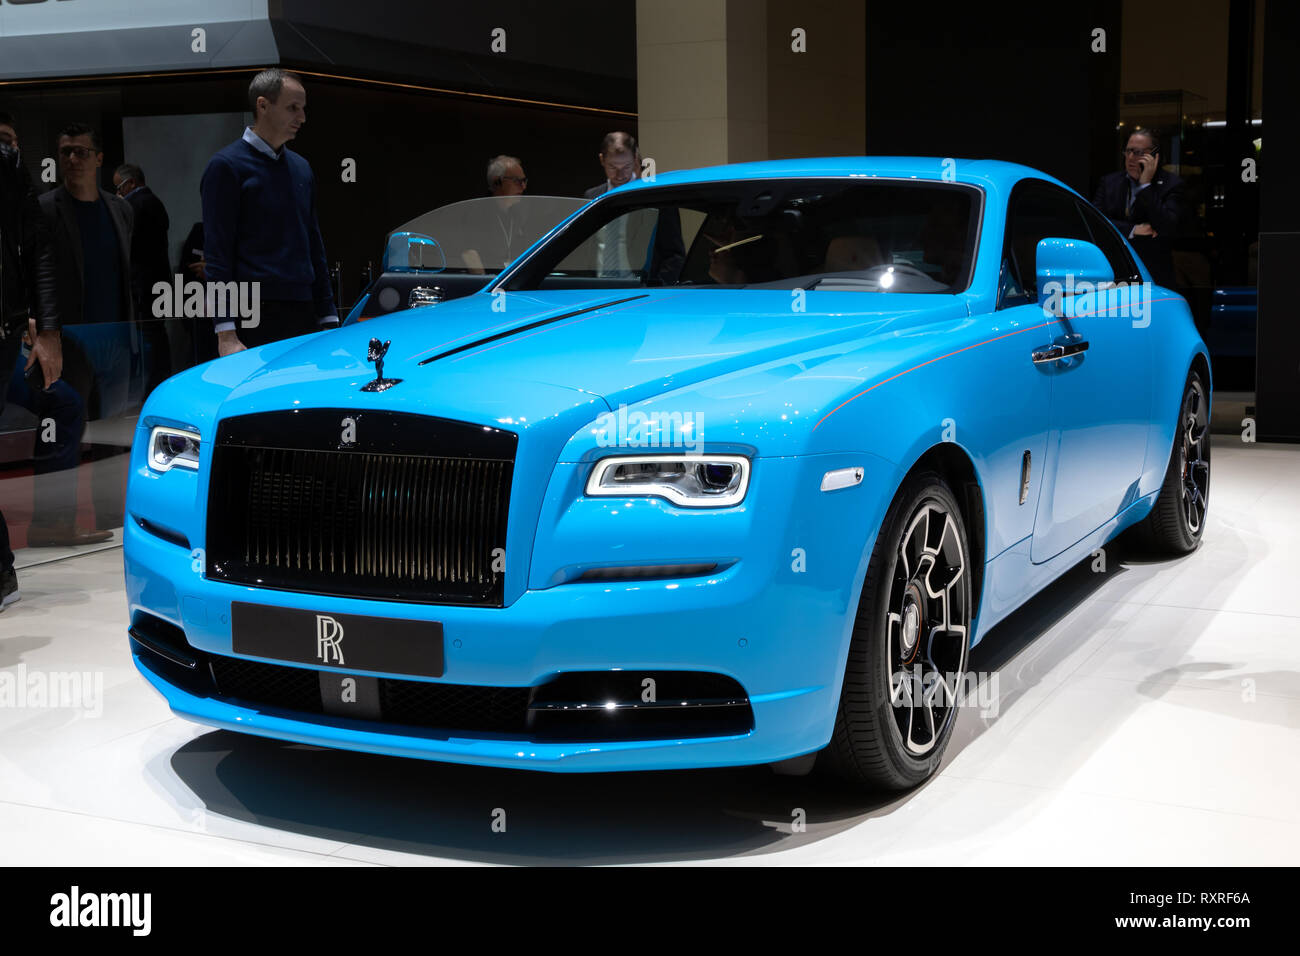 The Wraith Car >> Wraith Car Stock Photos Wraith Car Stock Images Alamy